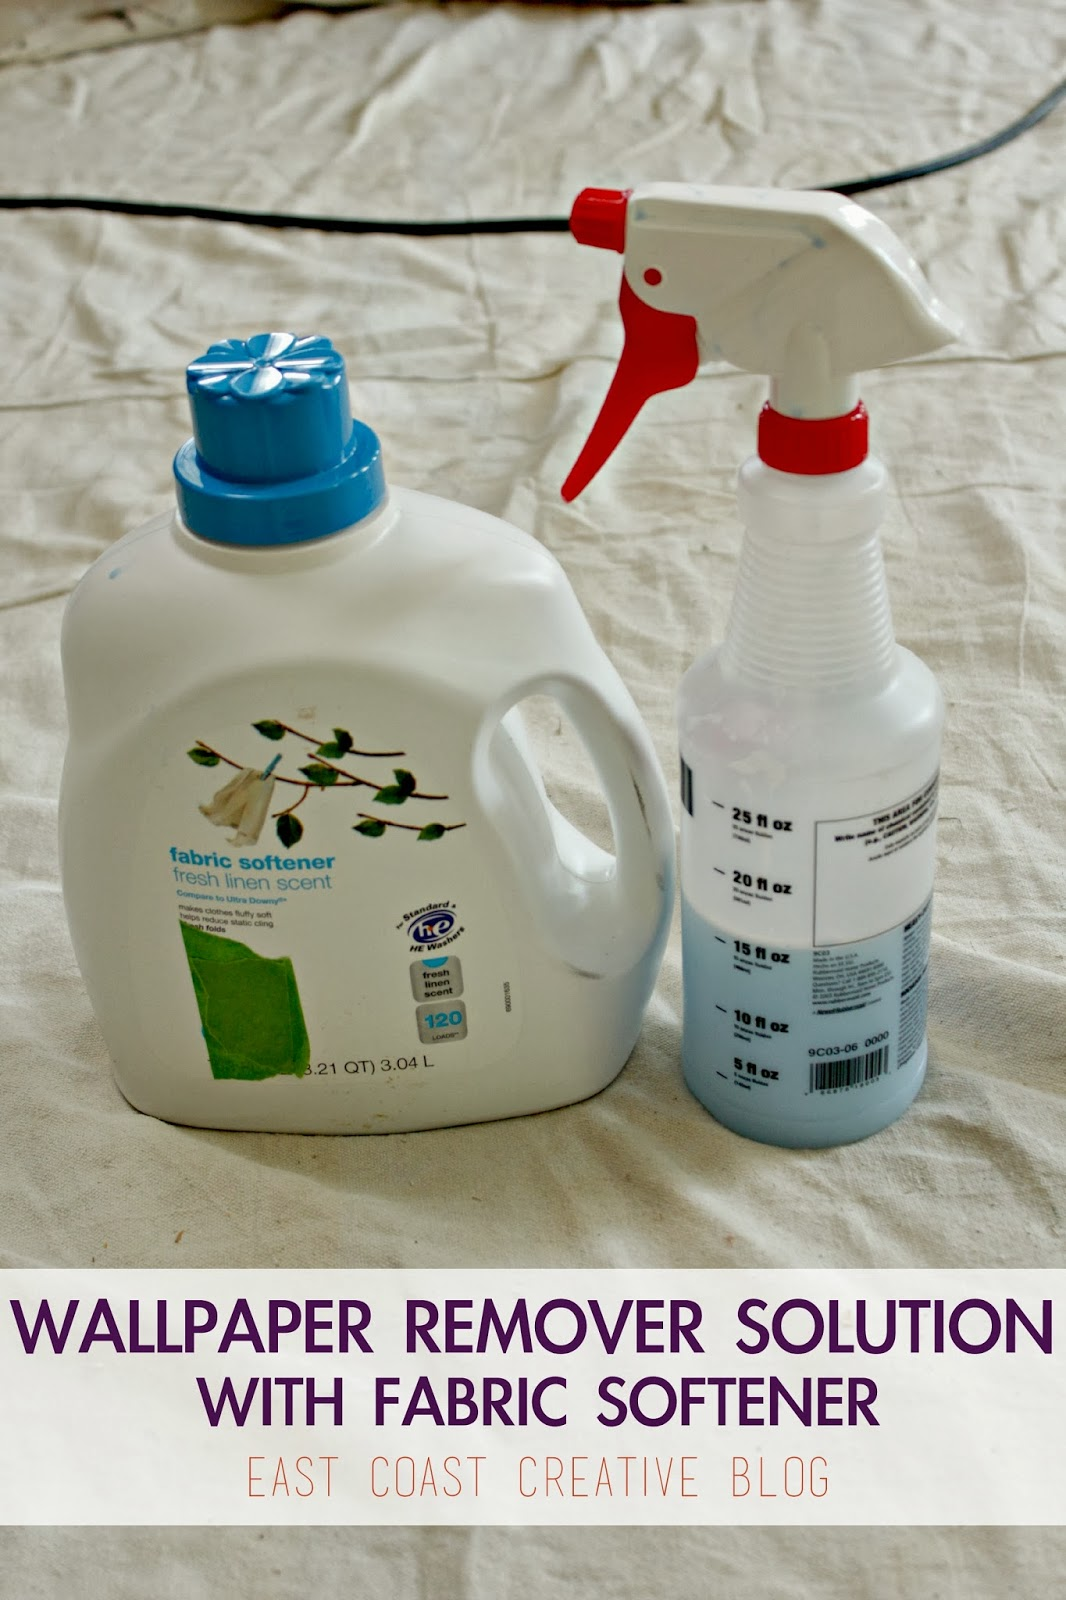 How to Remove Wallpaper the Easy Way!